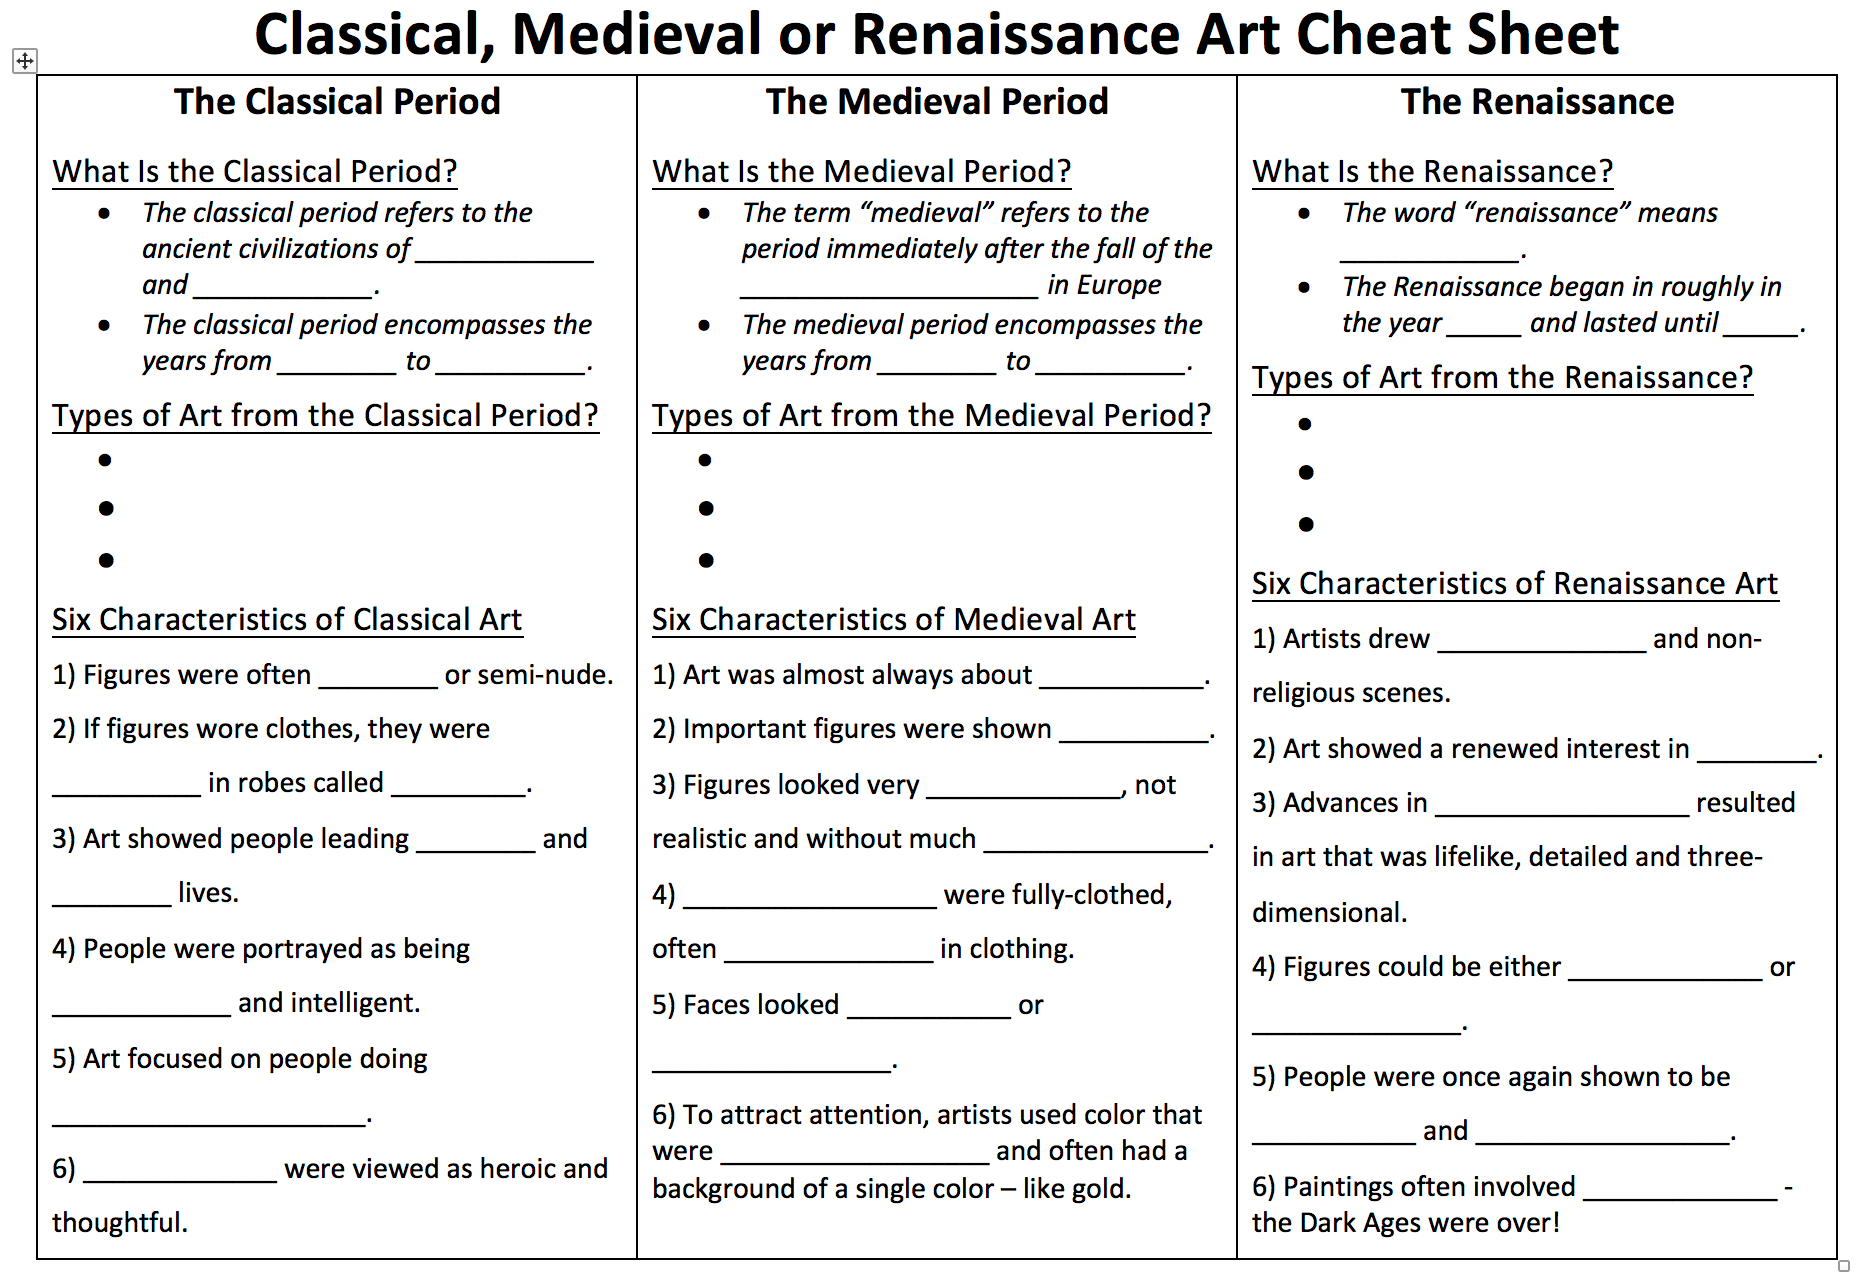 Classical Me Val Or Renaissance Let S Play The Ultim